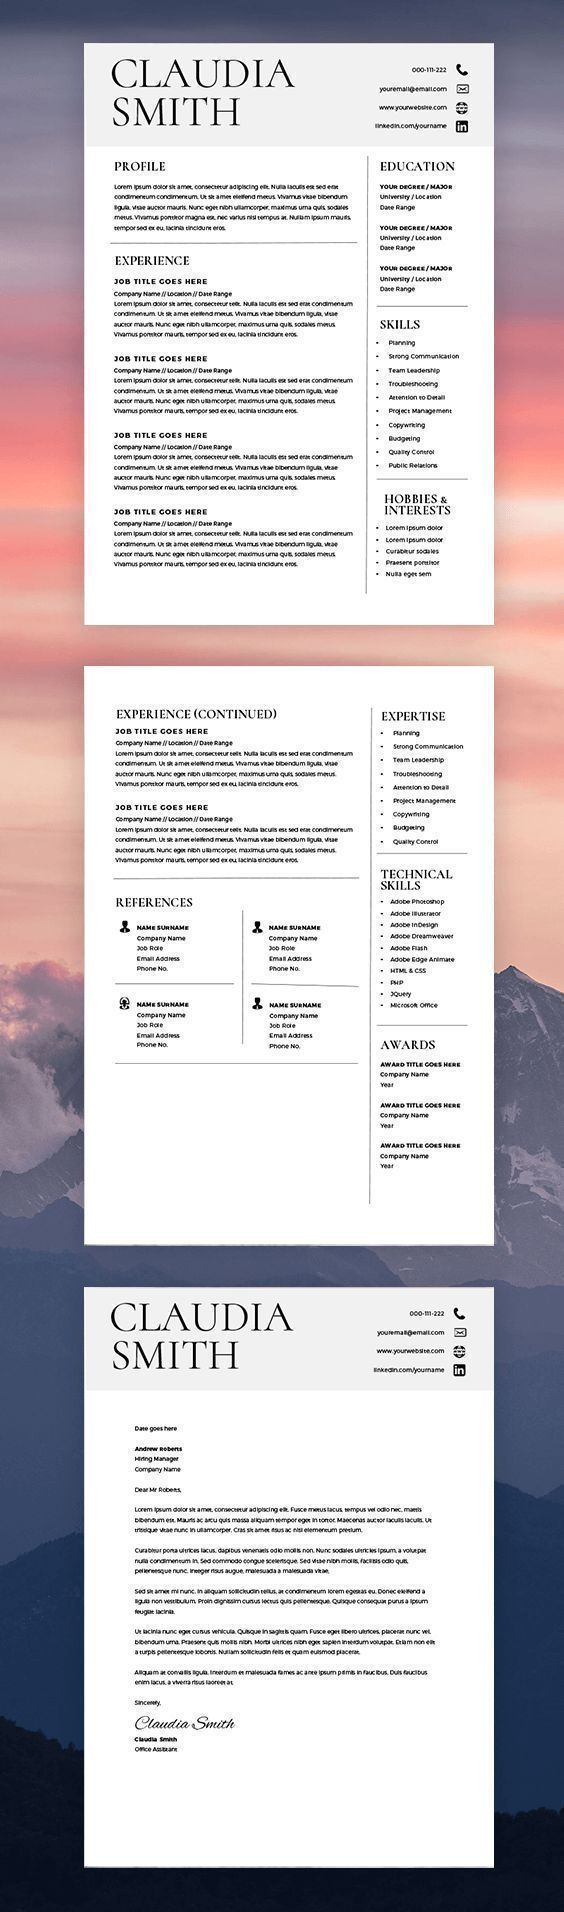 download job resume format%0A Medical Resume Template Word  Minimalist Resume  FREE Cover Letter  Resume  Template Word Mac